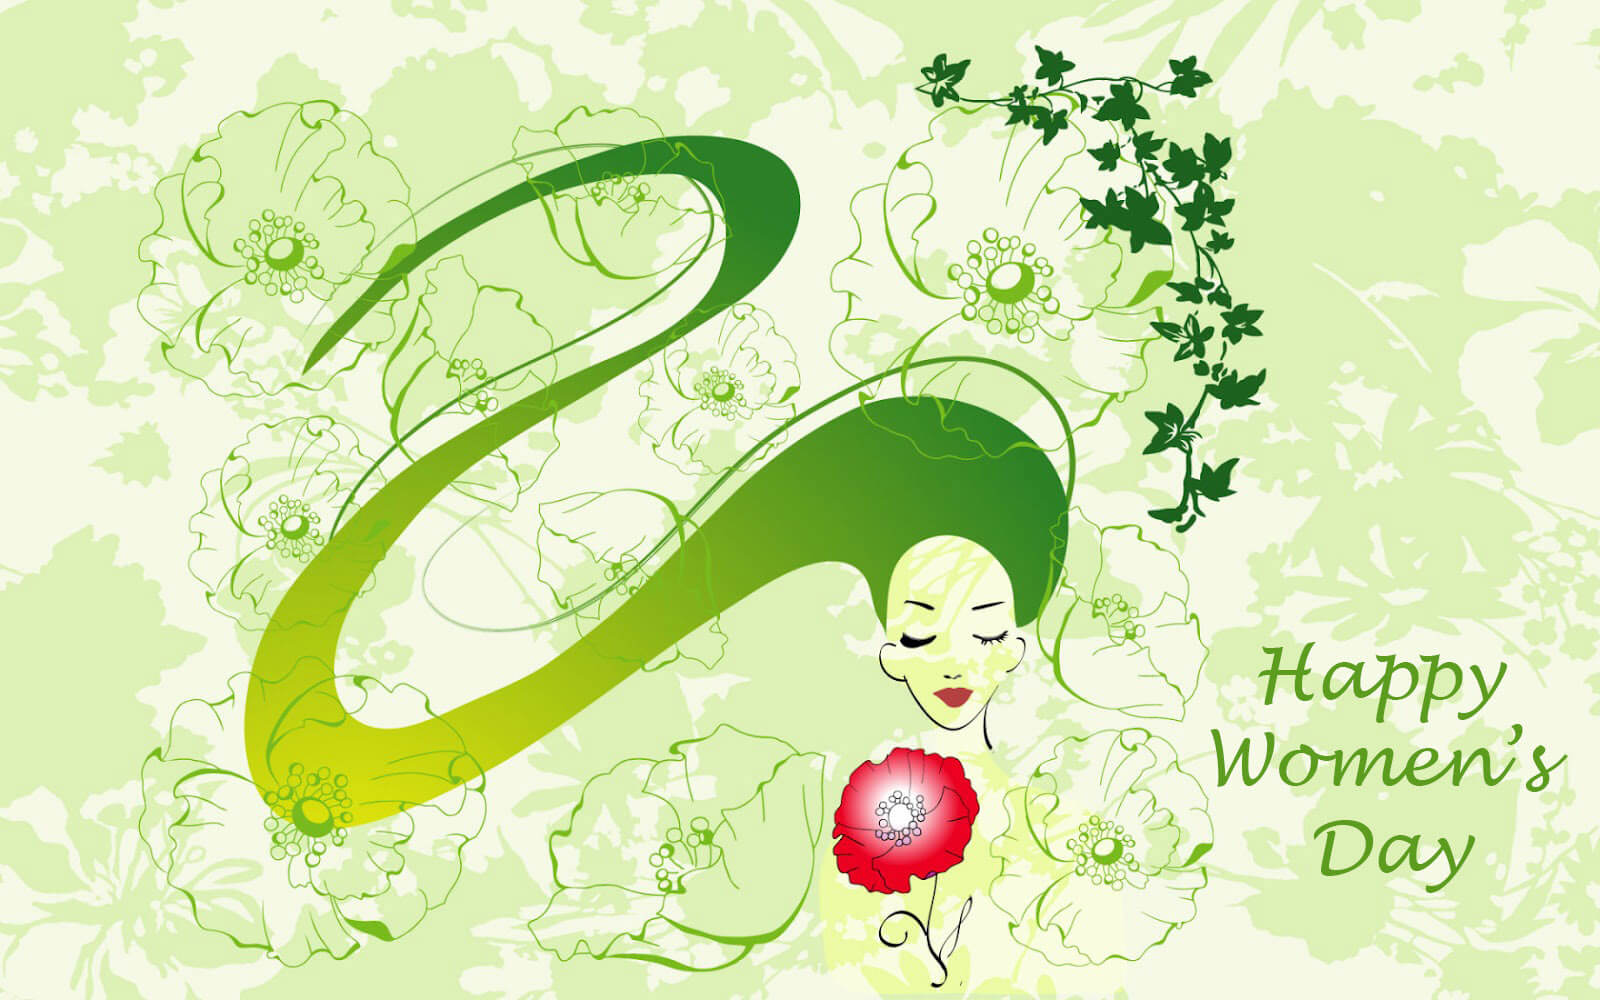 happy international womens day greetings card hd wallpaper